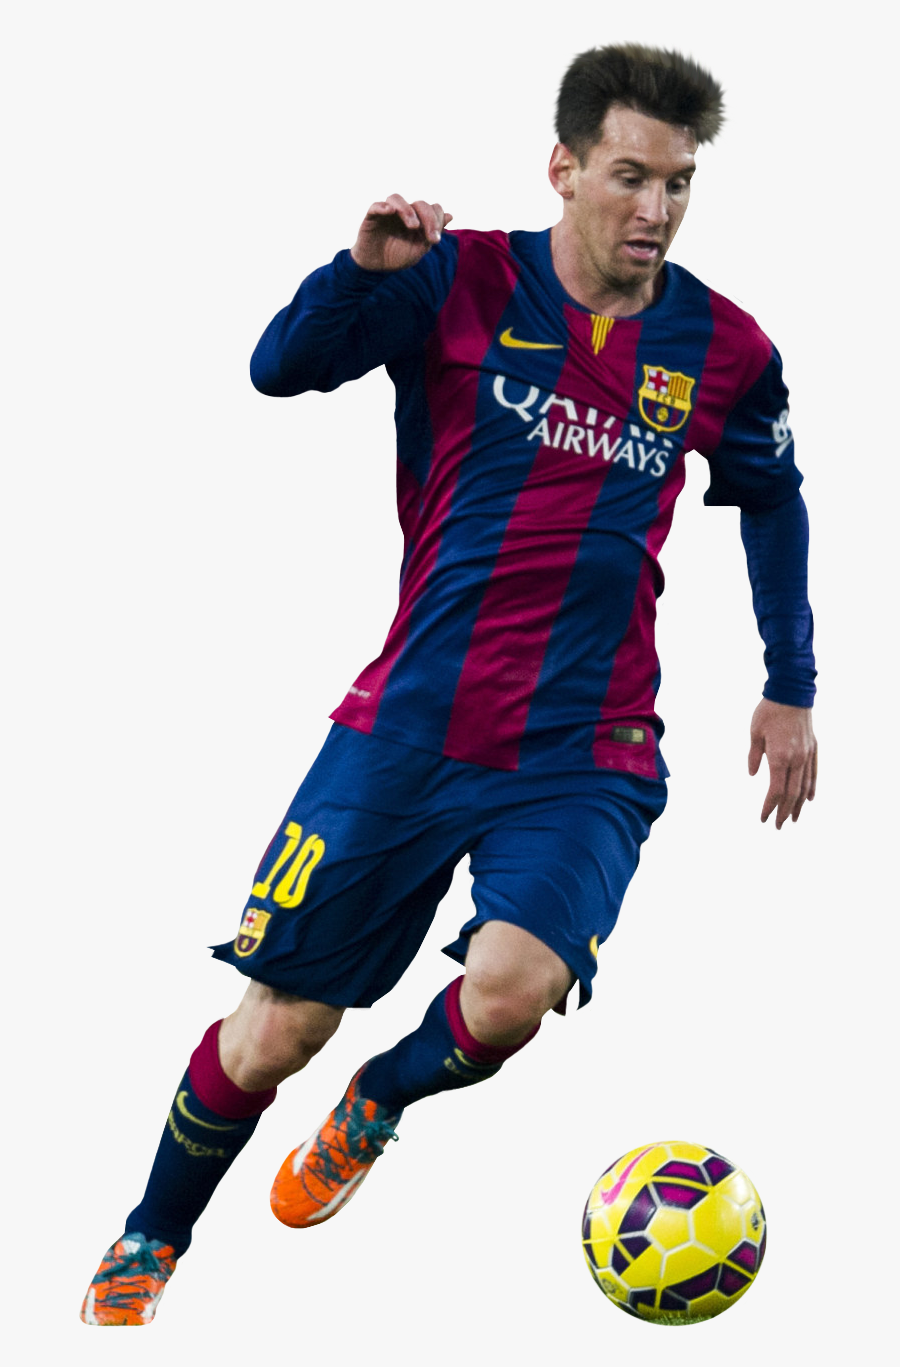 Messi Png - Messi Football Player Png, Transparent Clipart